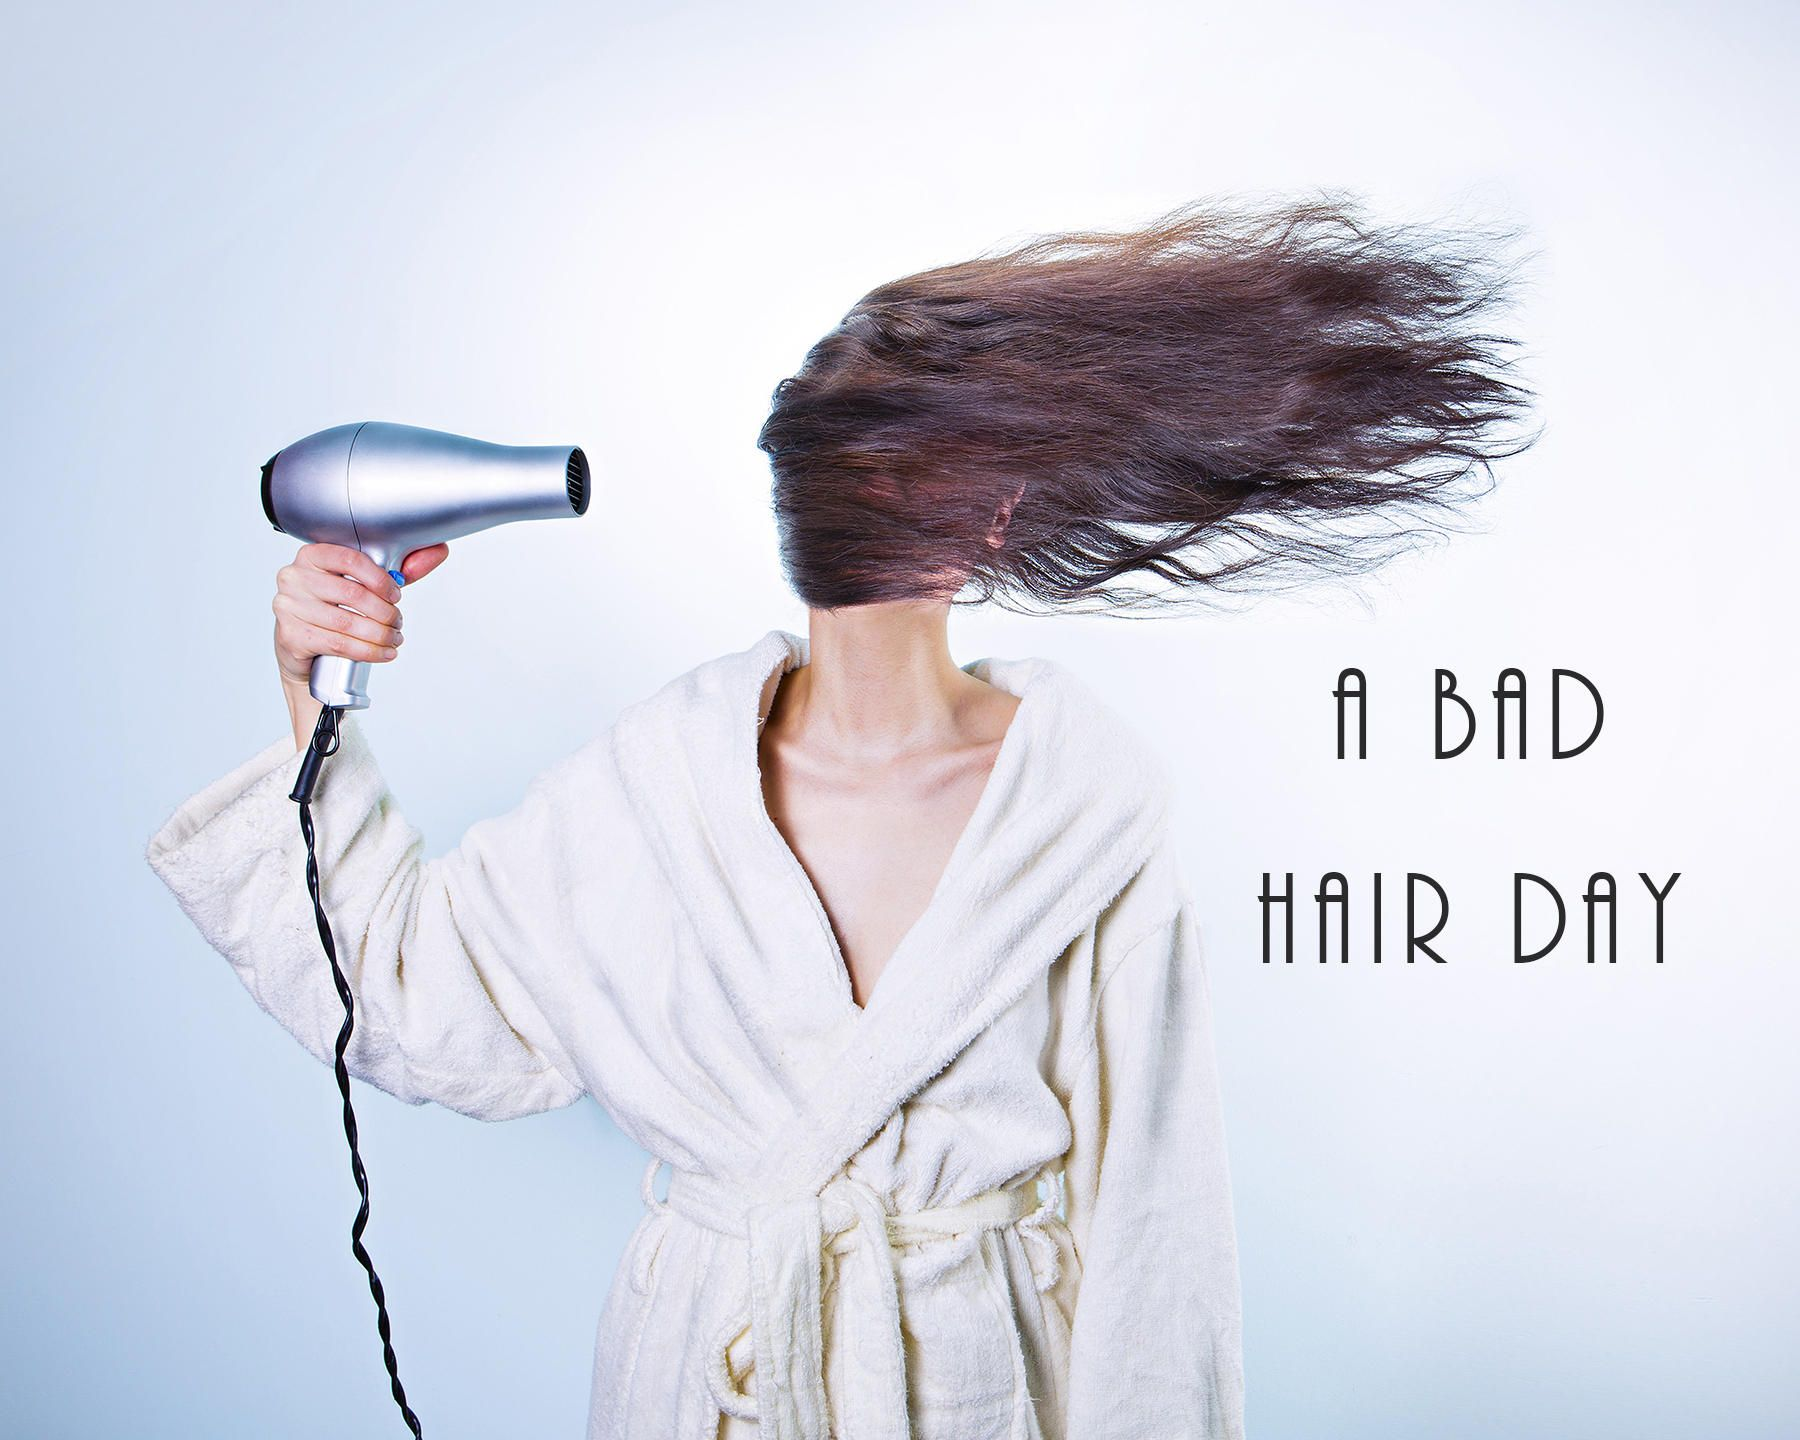 Bad Hair Day Hair Dryer Hairdresser Peluquero Hairdressing Salon Spa Stylist Stylist Beautician Funny Wall Art Print Free USA Shipping by admurphyphotography on Etsy